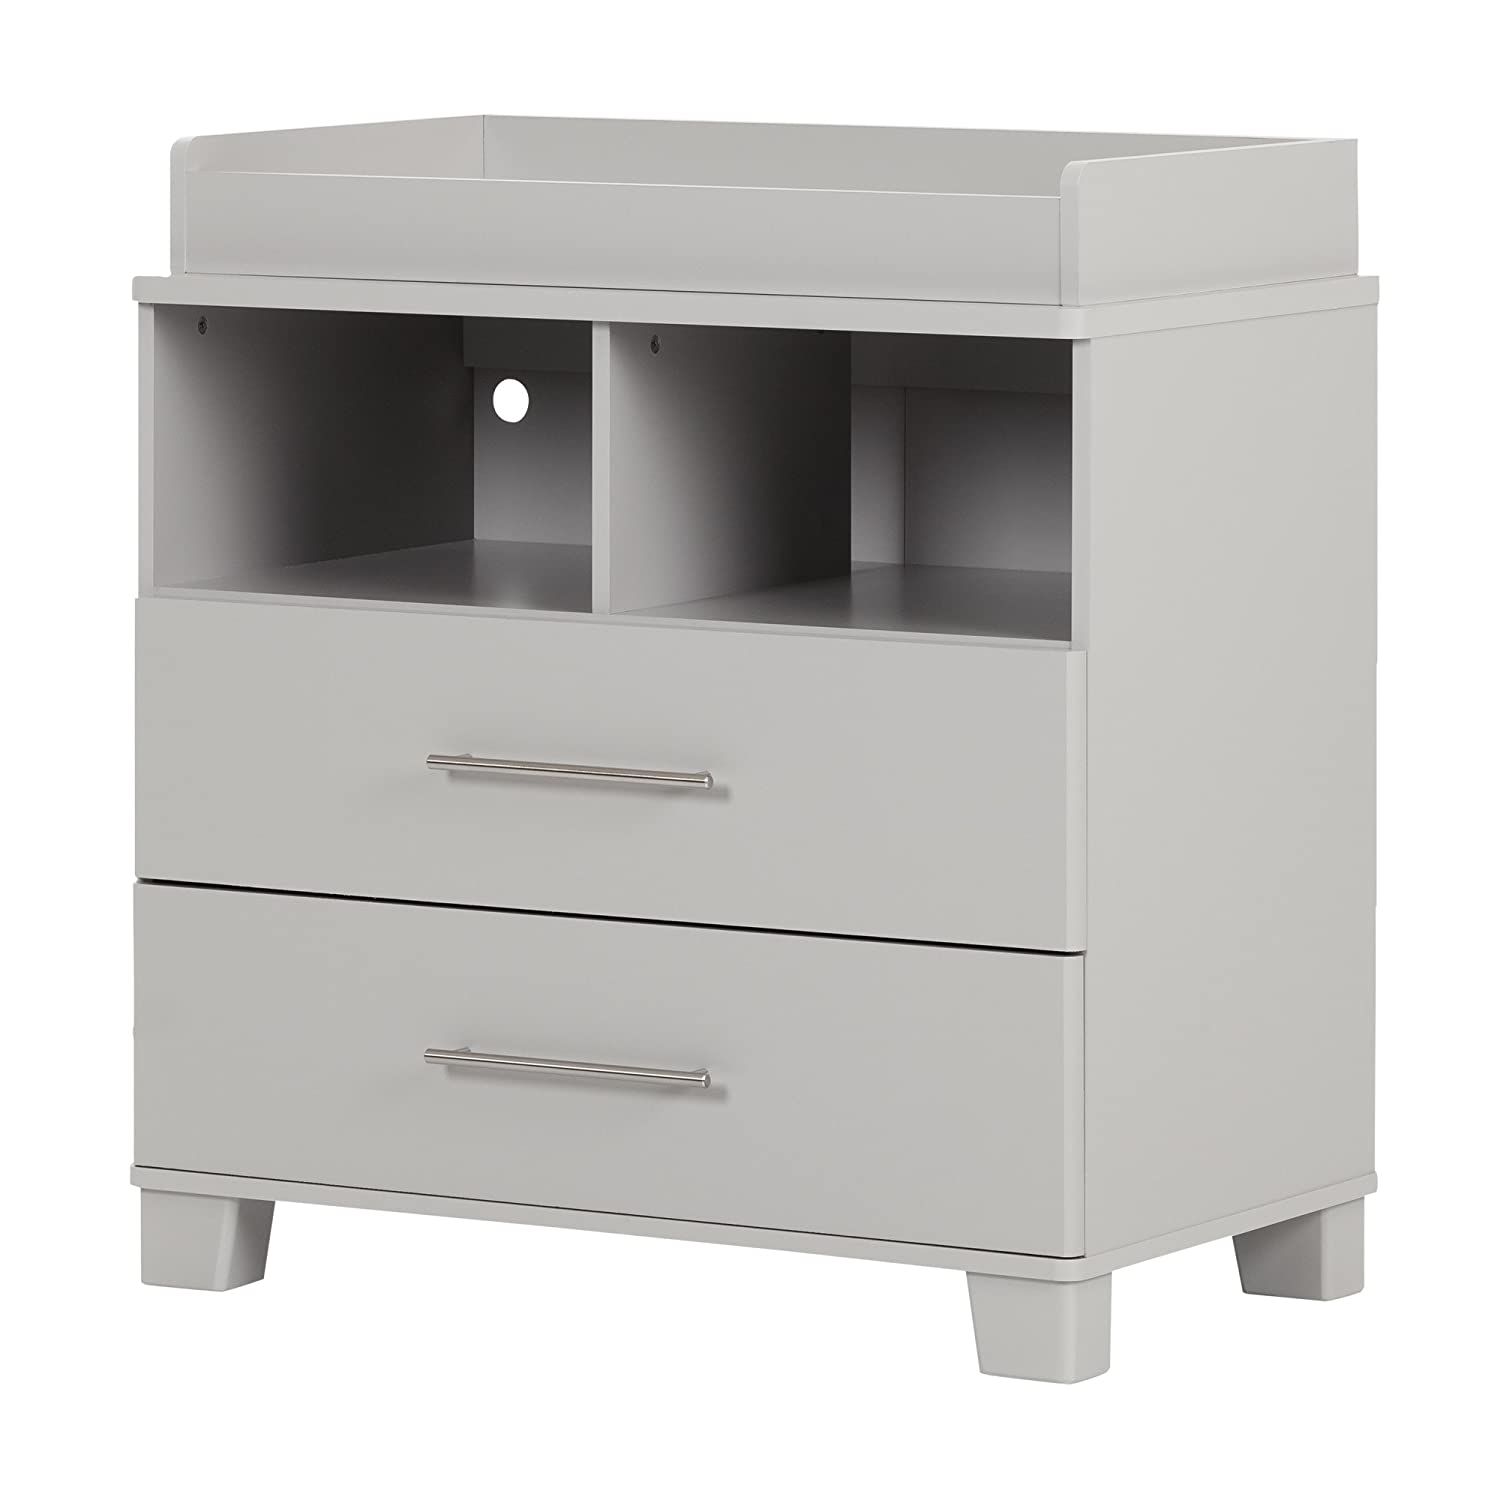 South Shore Furniture Cuddly Changing Table, Soft Gray 10514